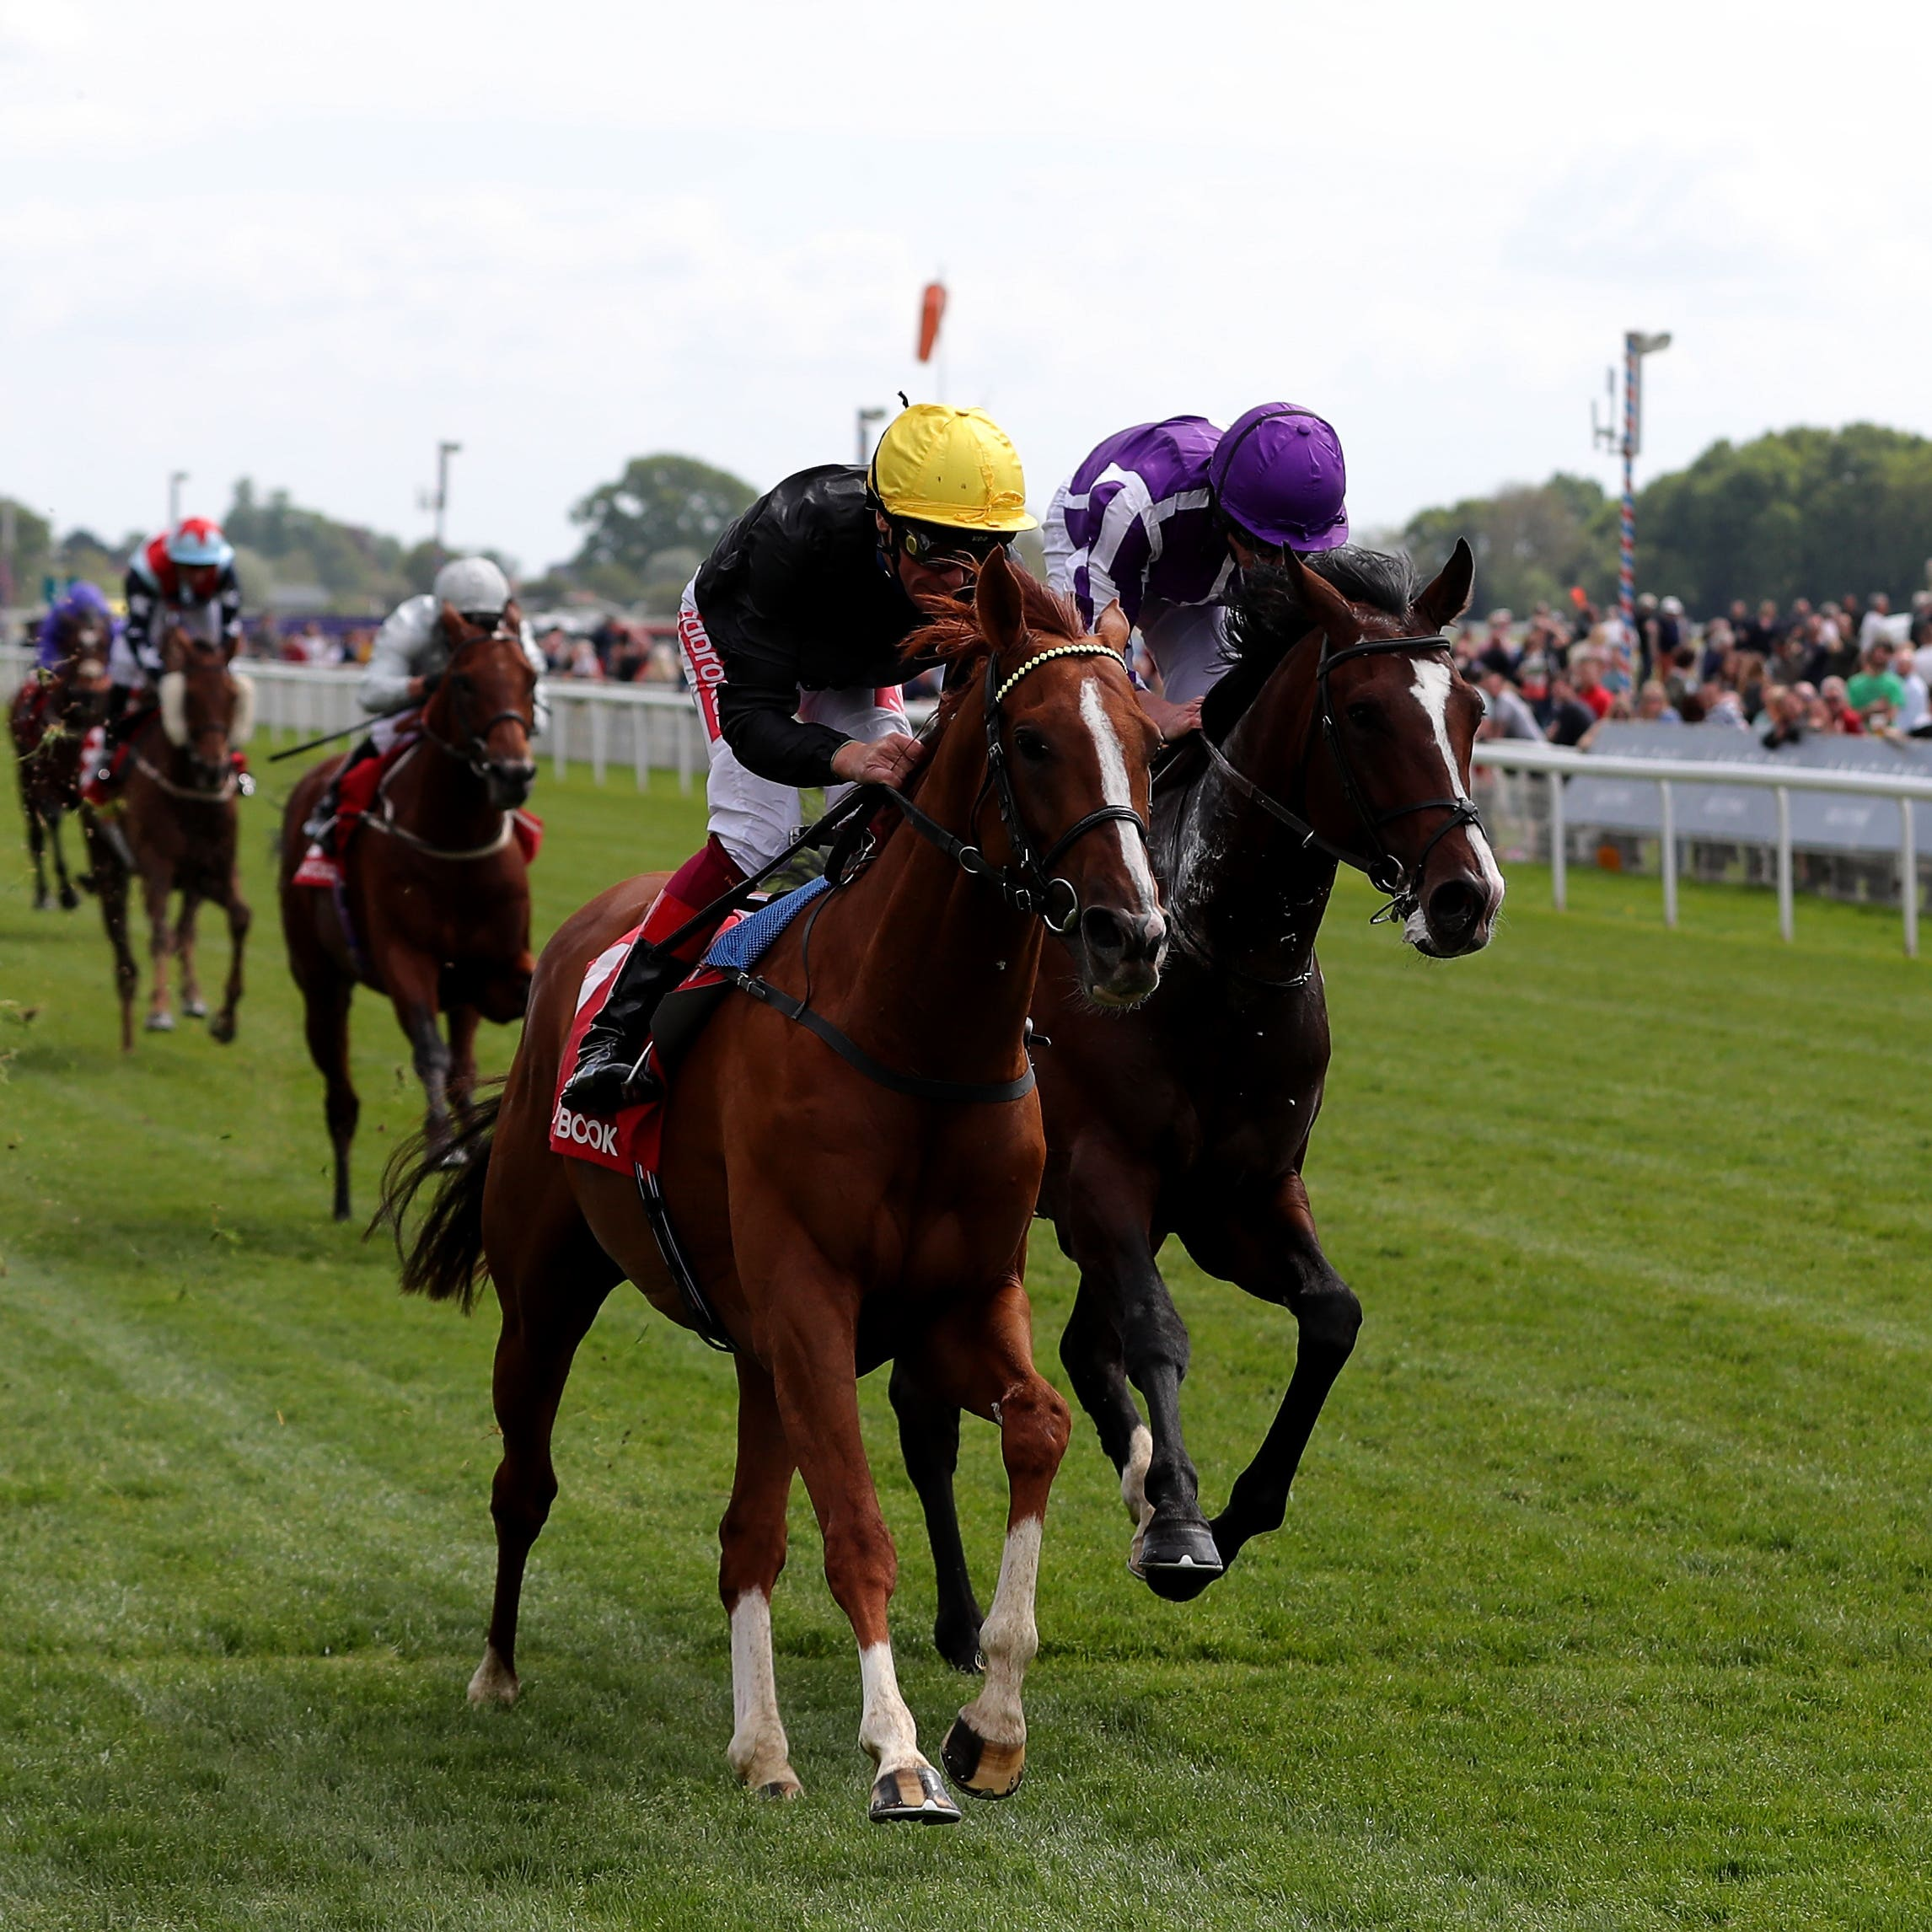 Stradivarius and Frankie Dettori landed a repeat success in the Yorkshire Cup